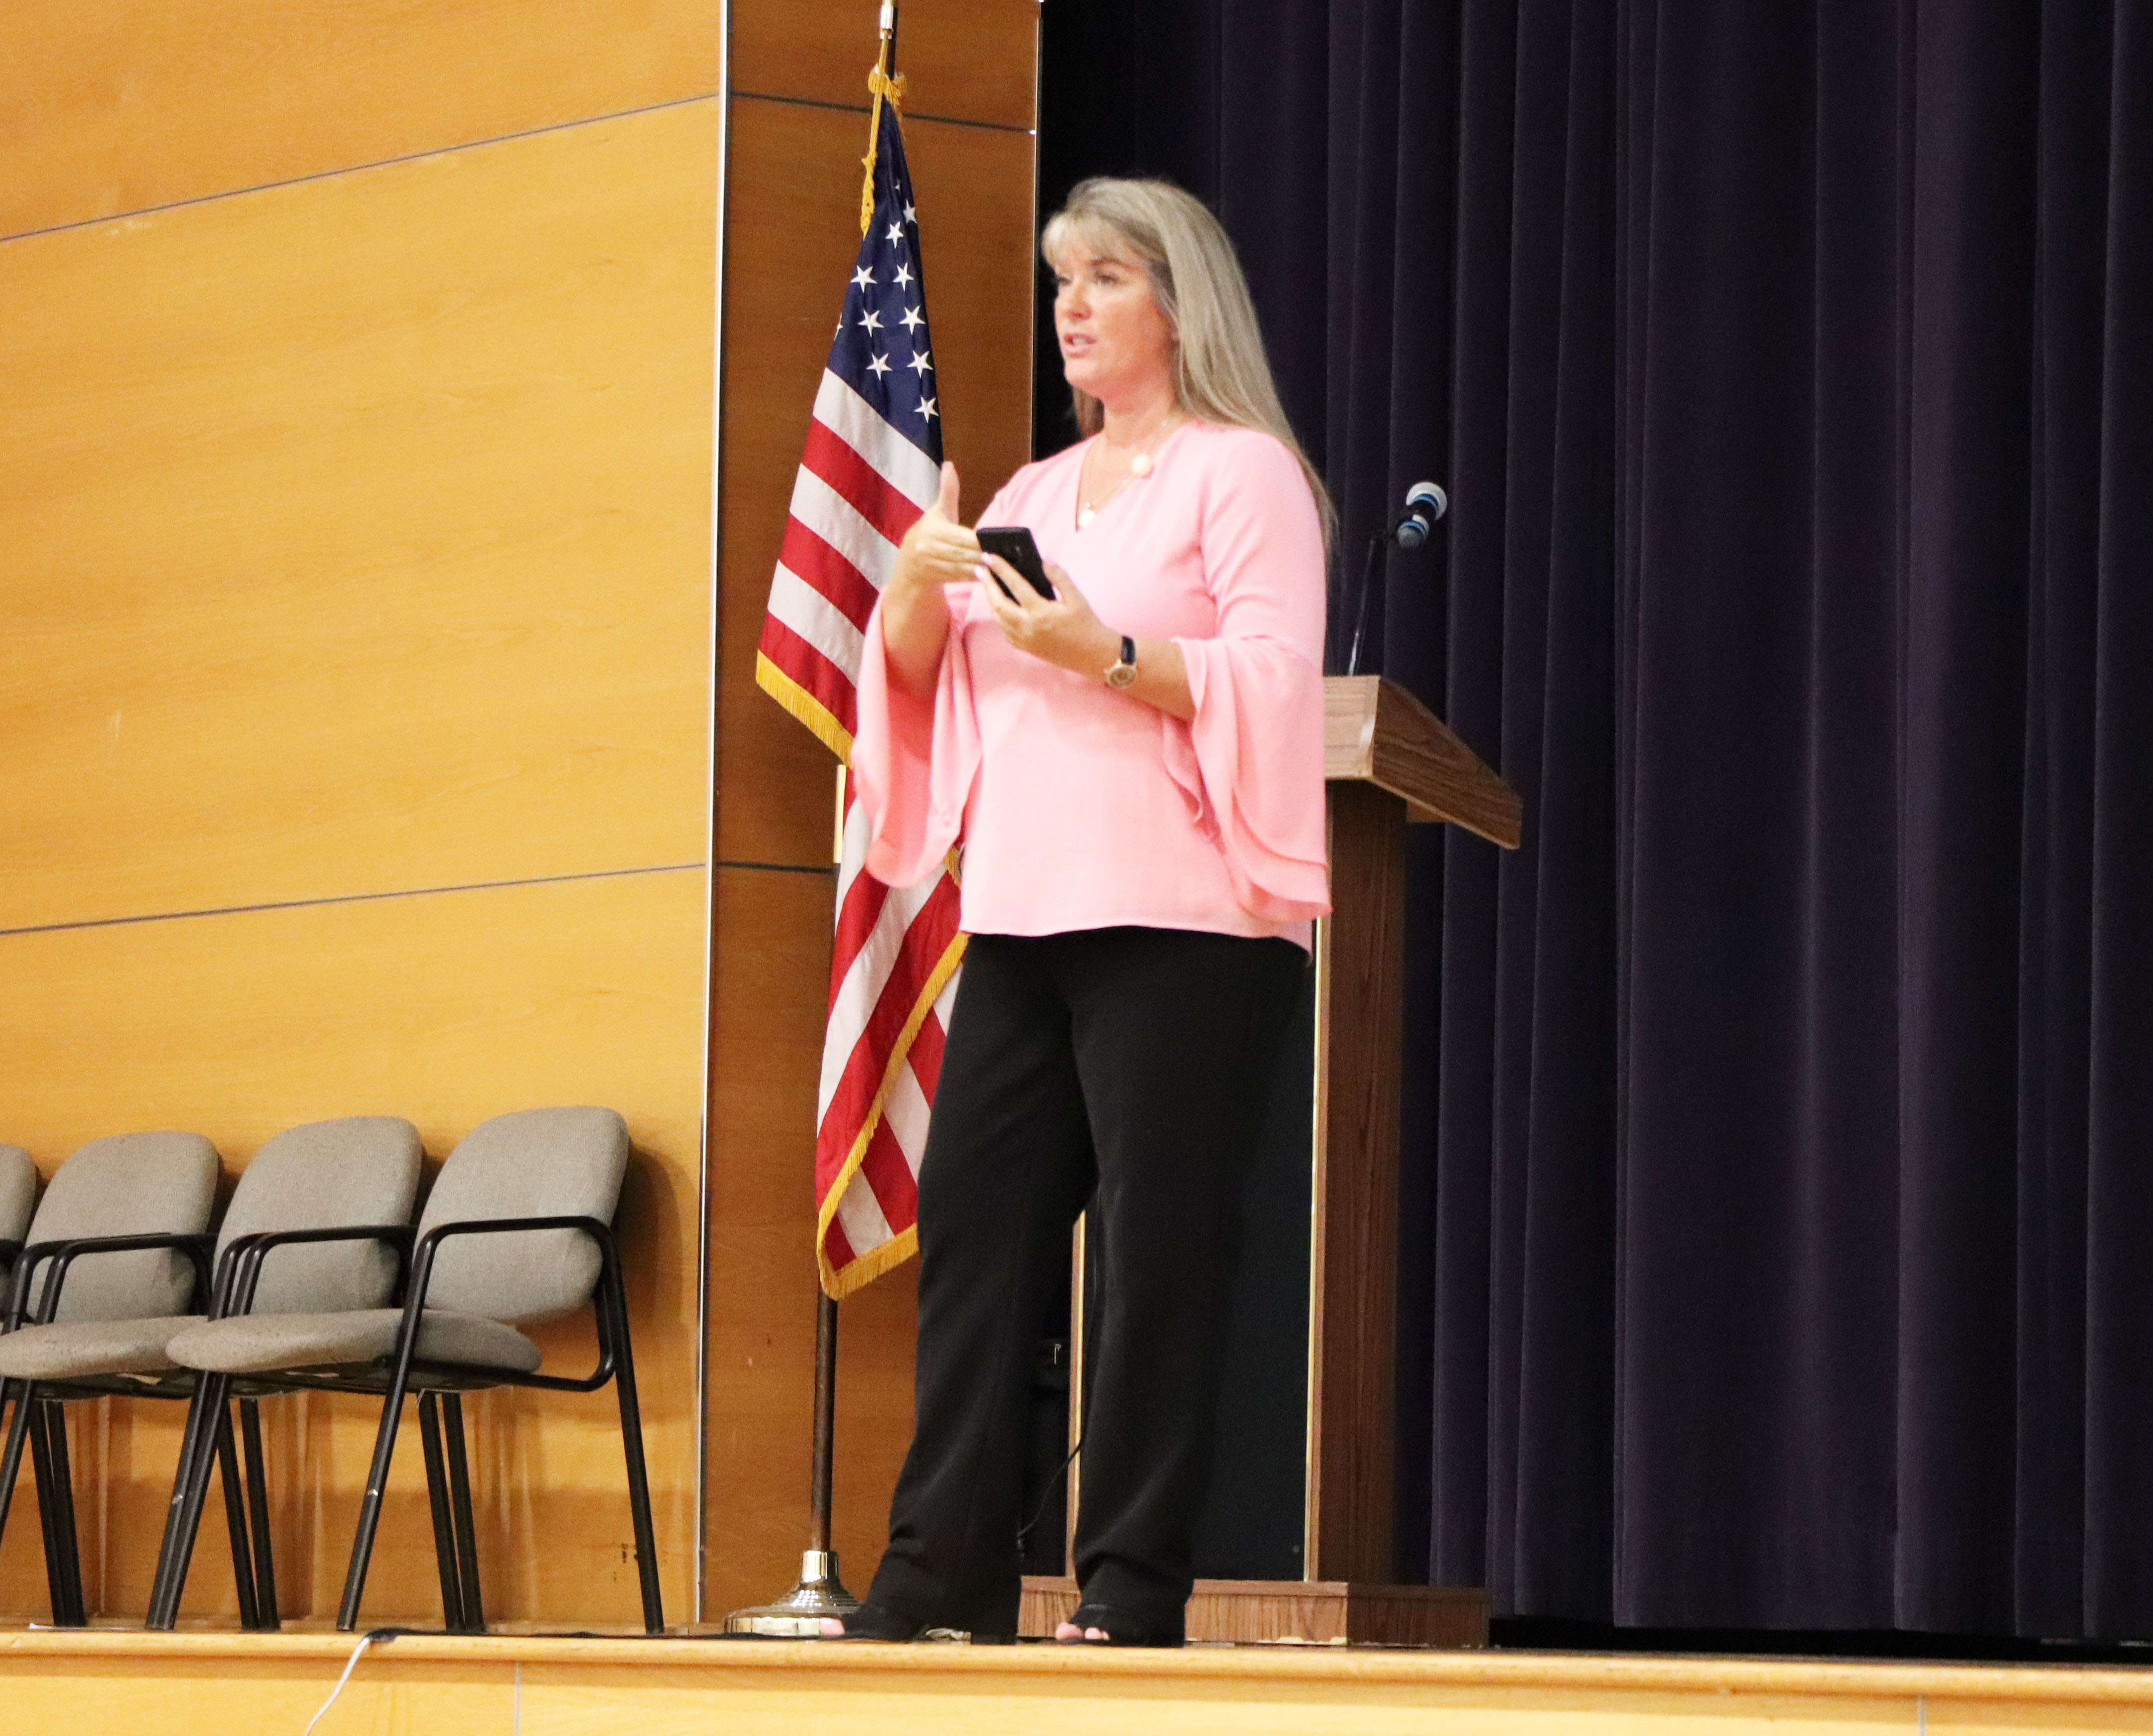 Keeping Kids Safe Online the Focus of Chester County Safe Schools Summit